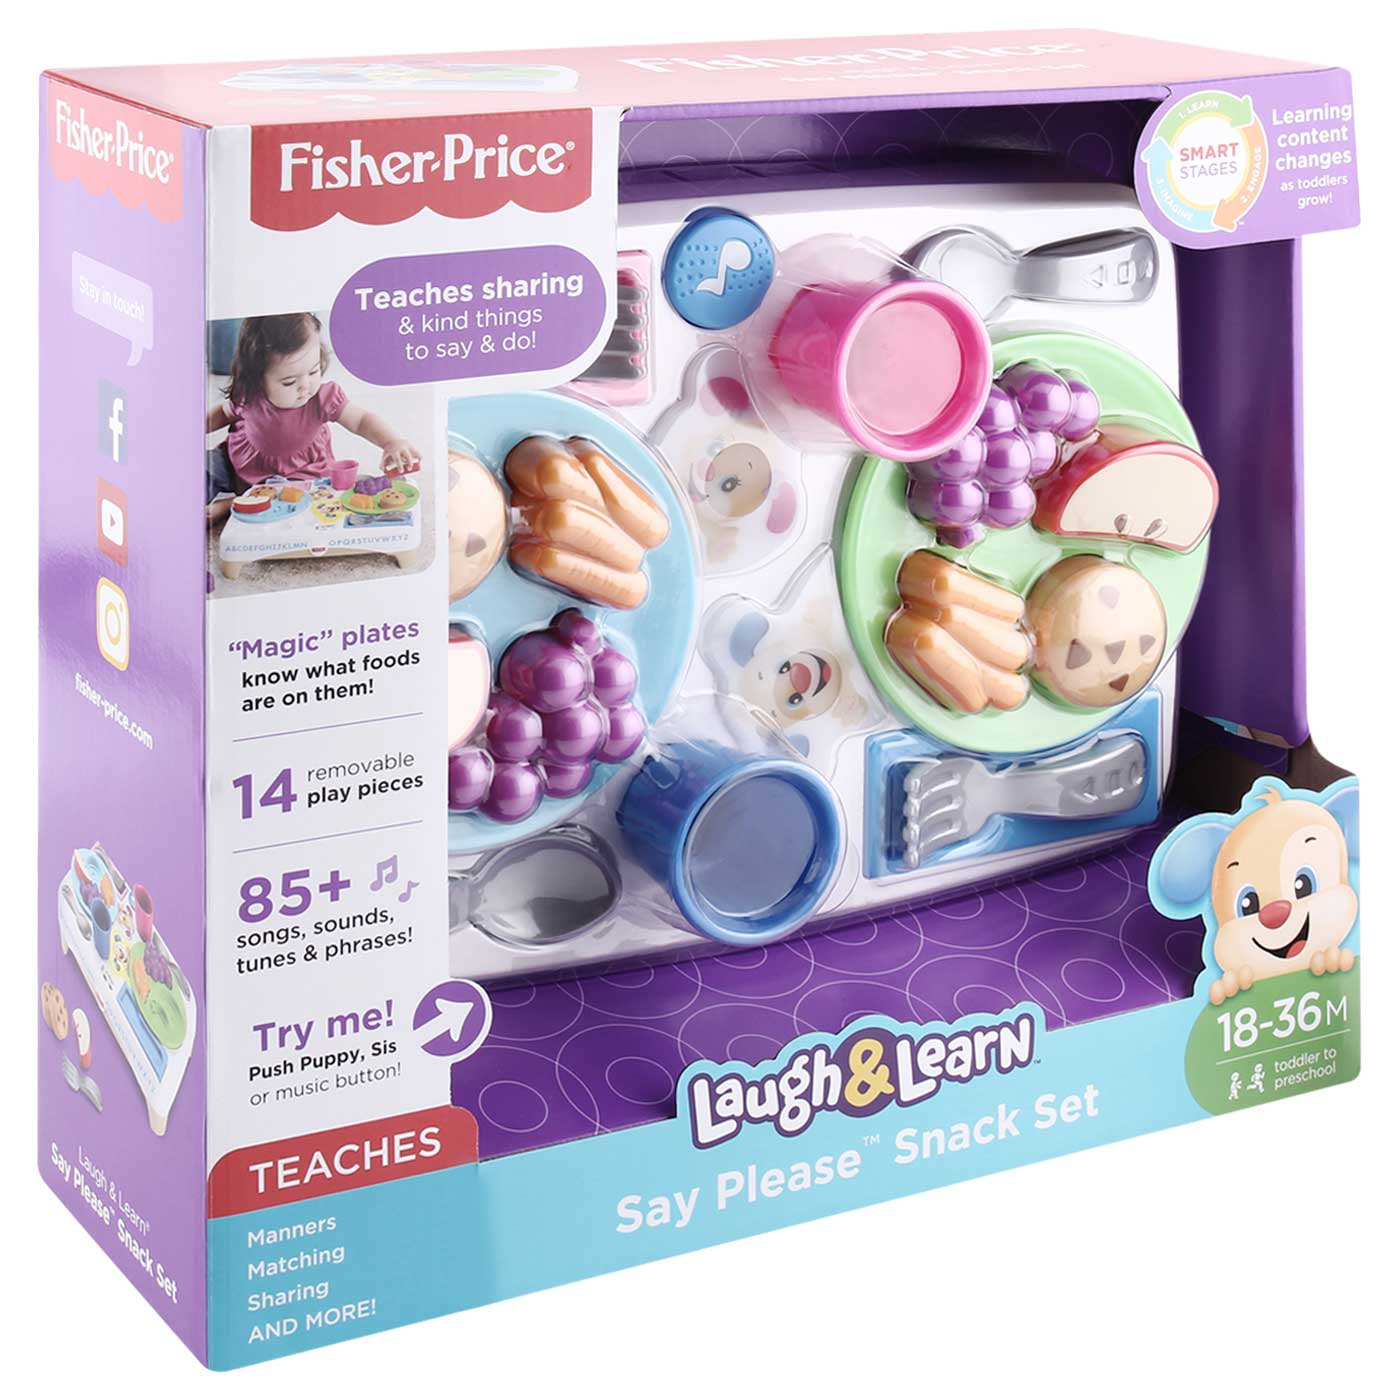 Fisher Price Laugh & Learn Say Please Snack Set 3